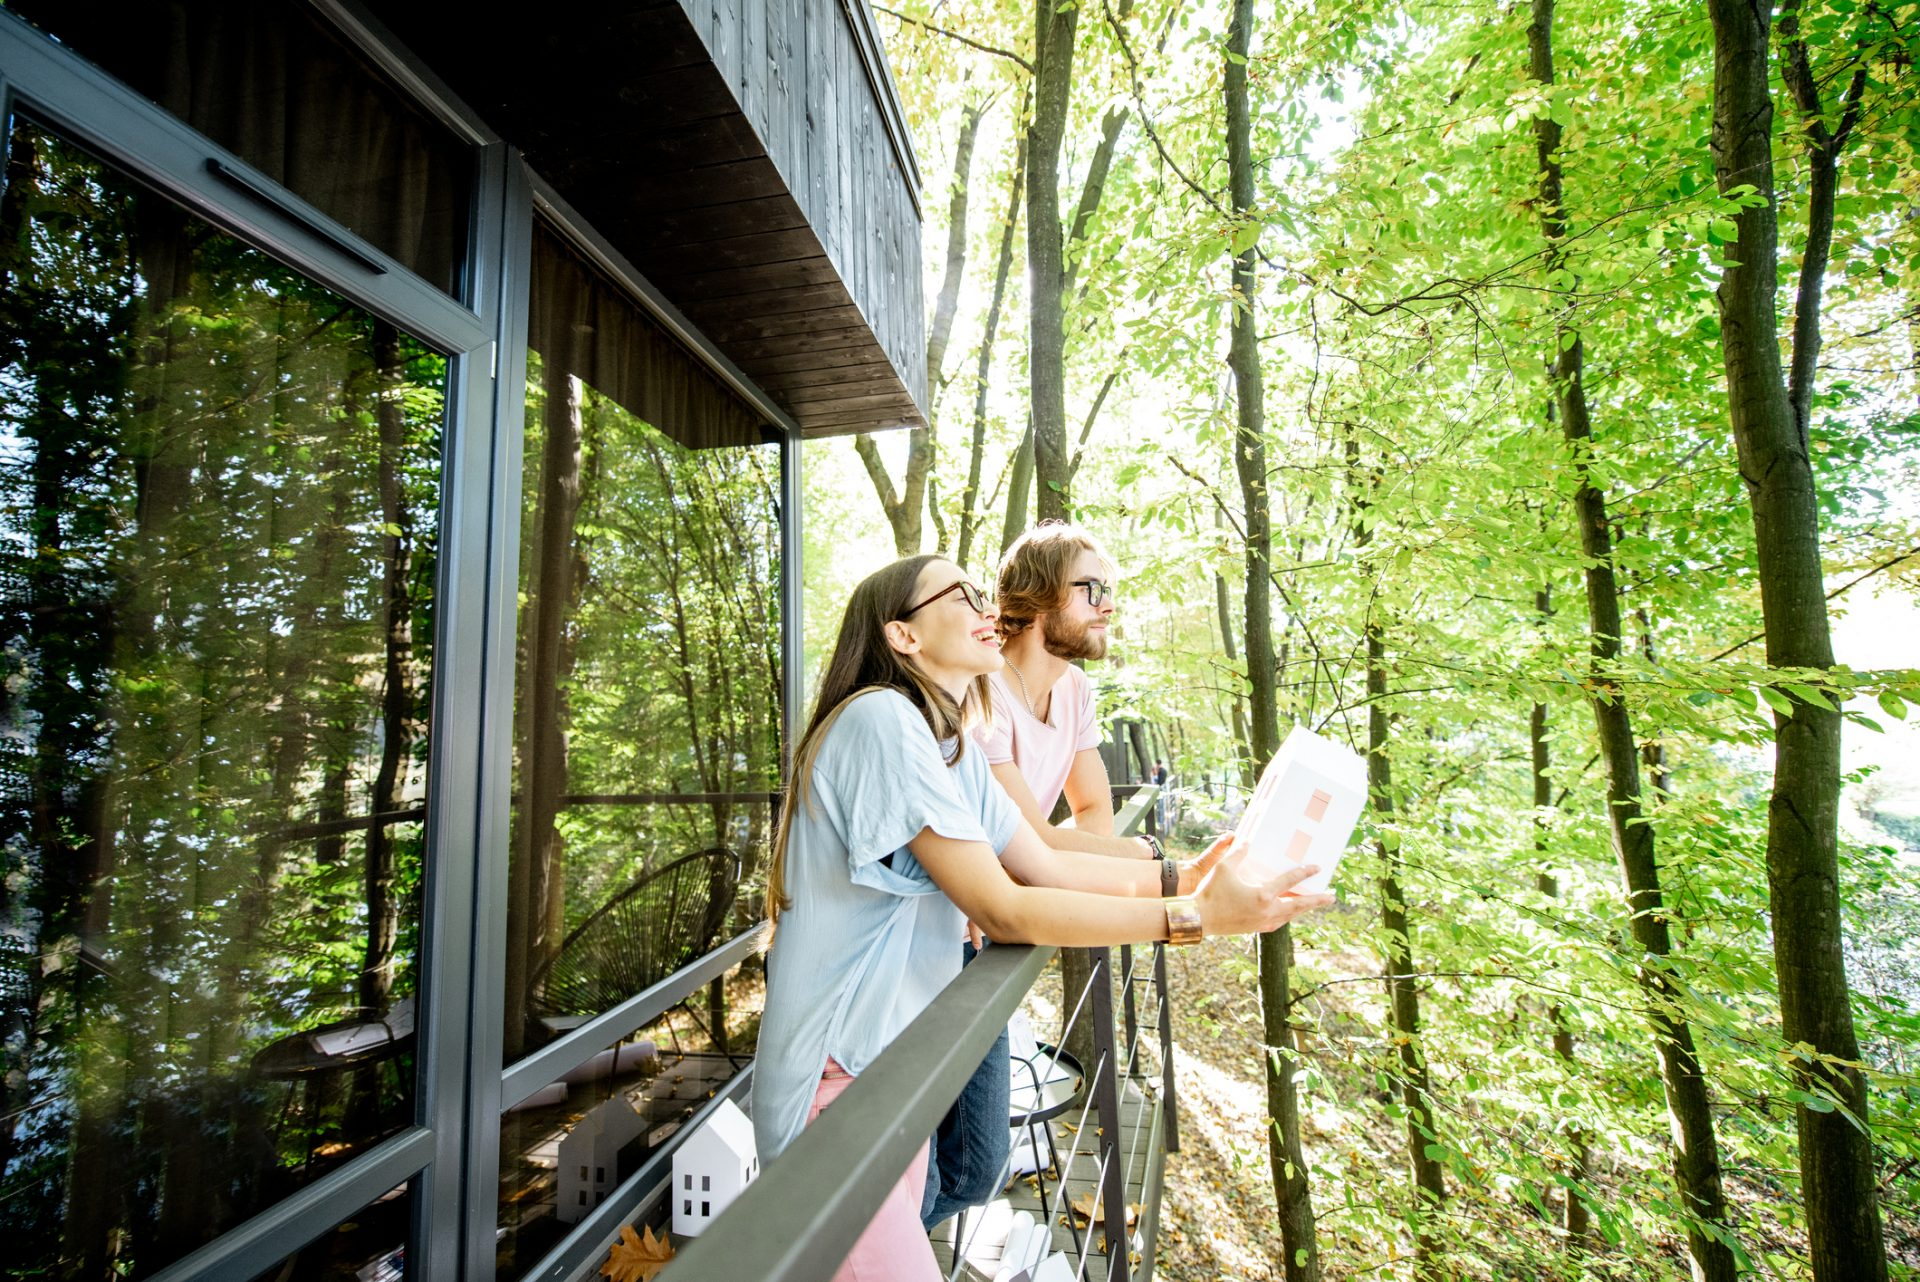 Young creative couple standing with house model on the balcony, designing or dreaming about eco houses in the forest